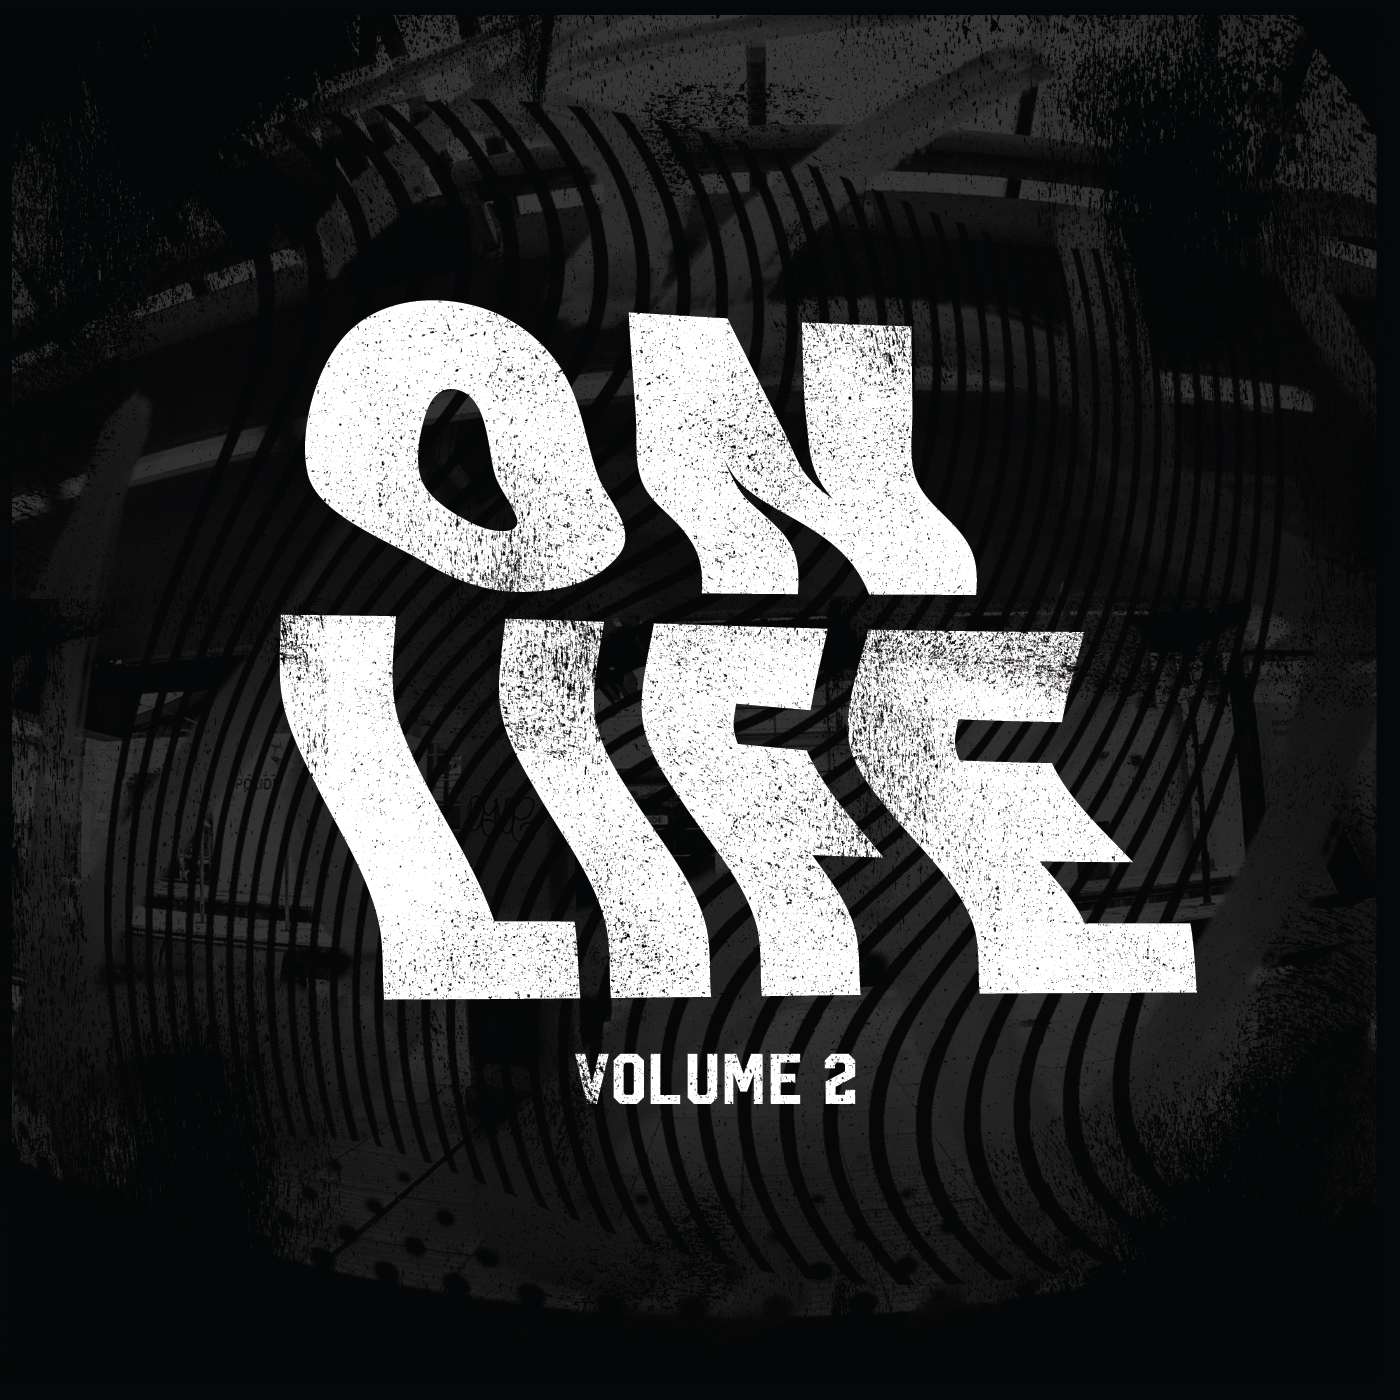 TEKLIFE ON LIFE volume 2